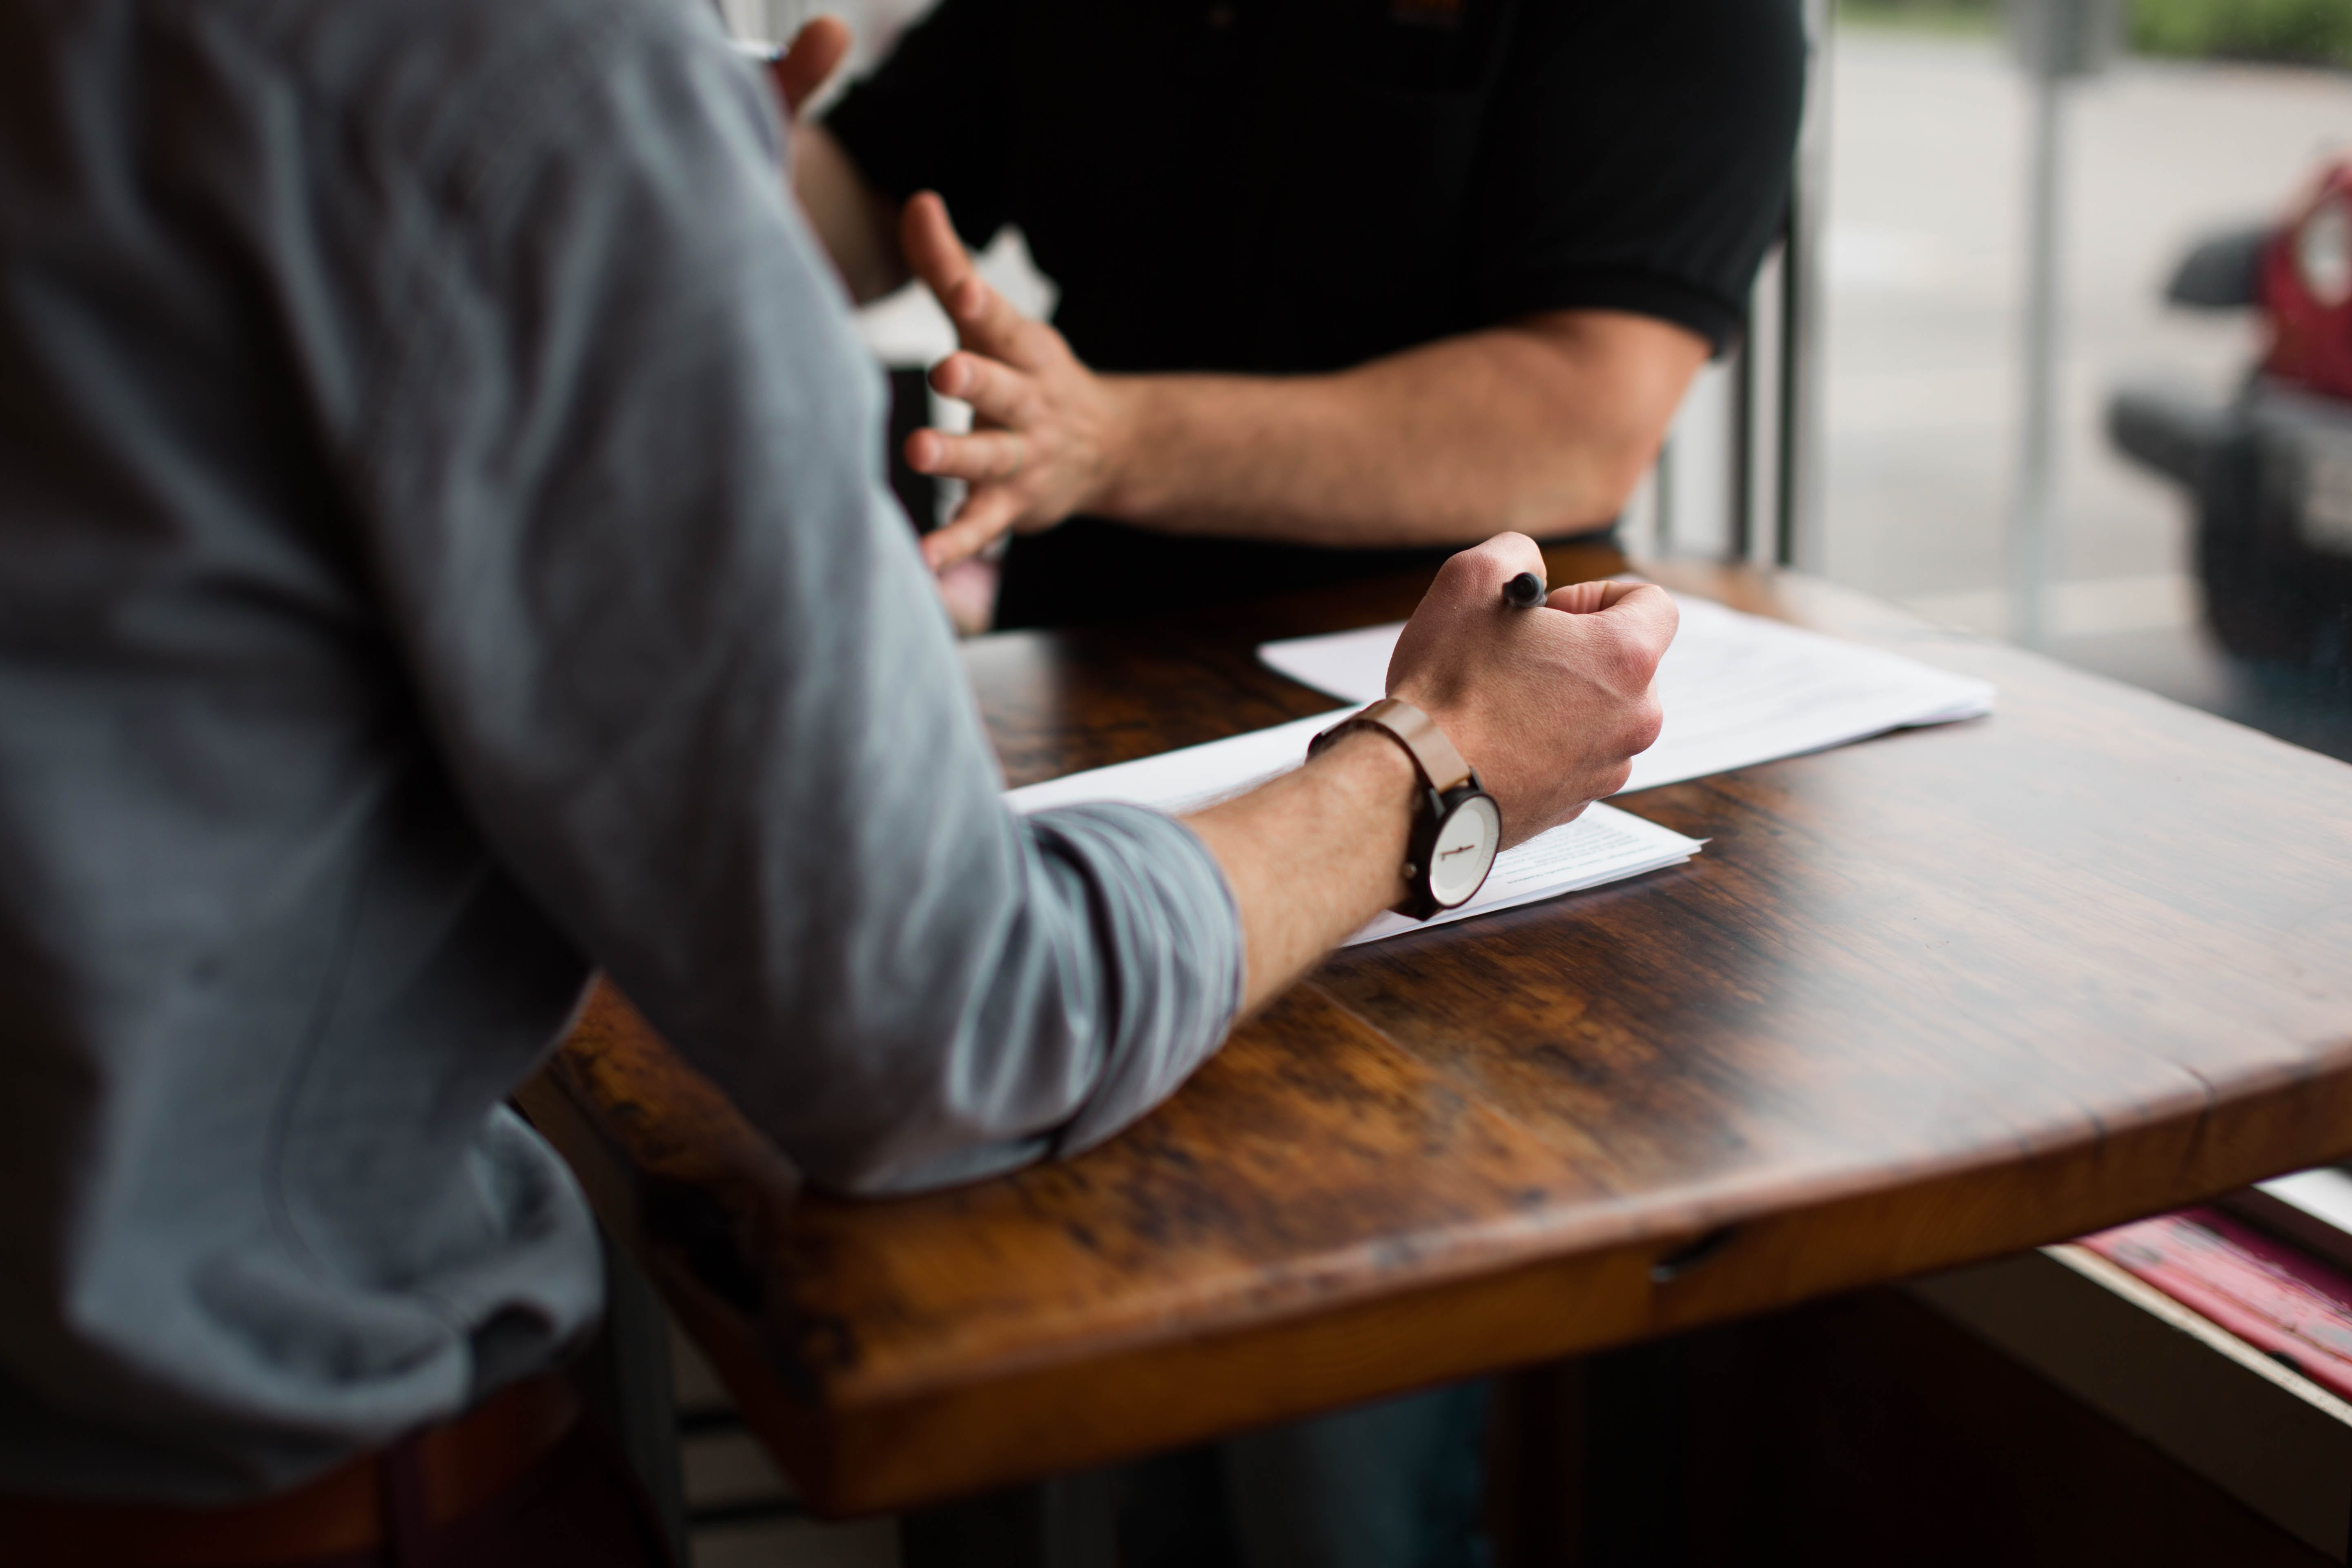 Two men reviewing documents at brown wooden table; image by Nik MacMillan, via Unsplash.com.